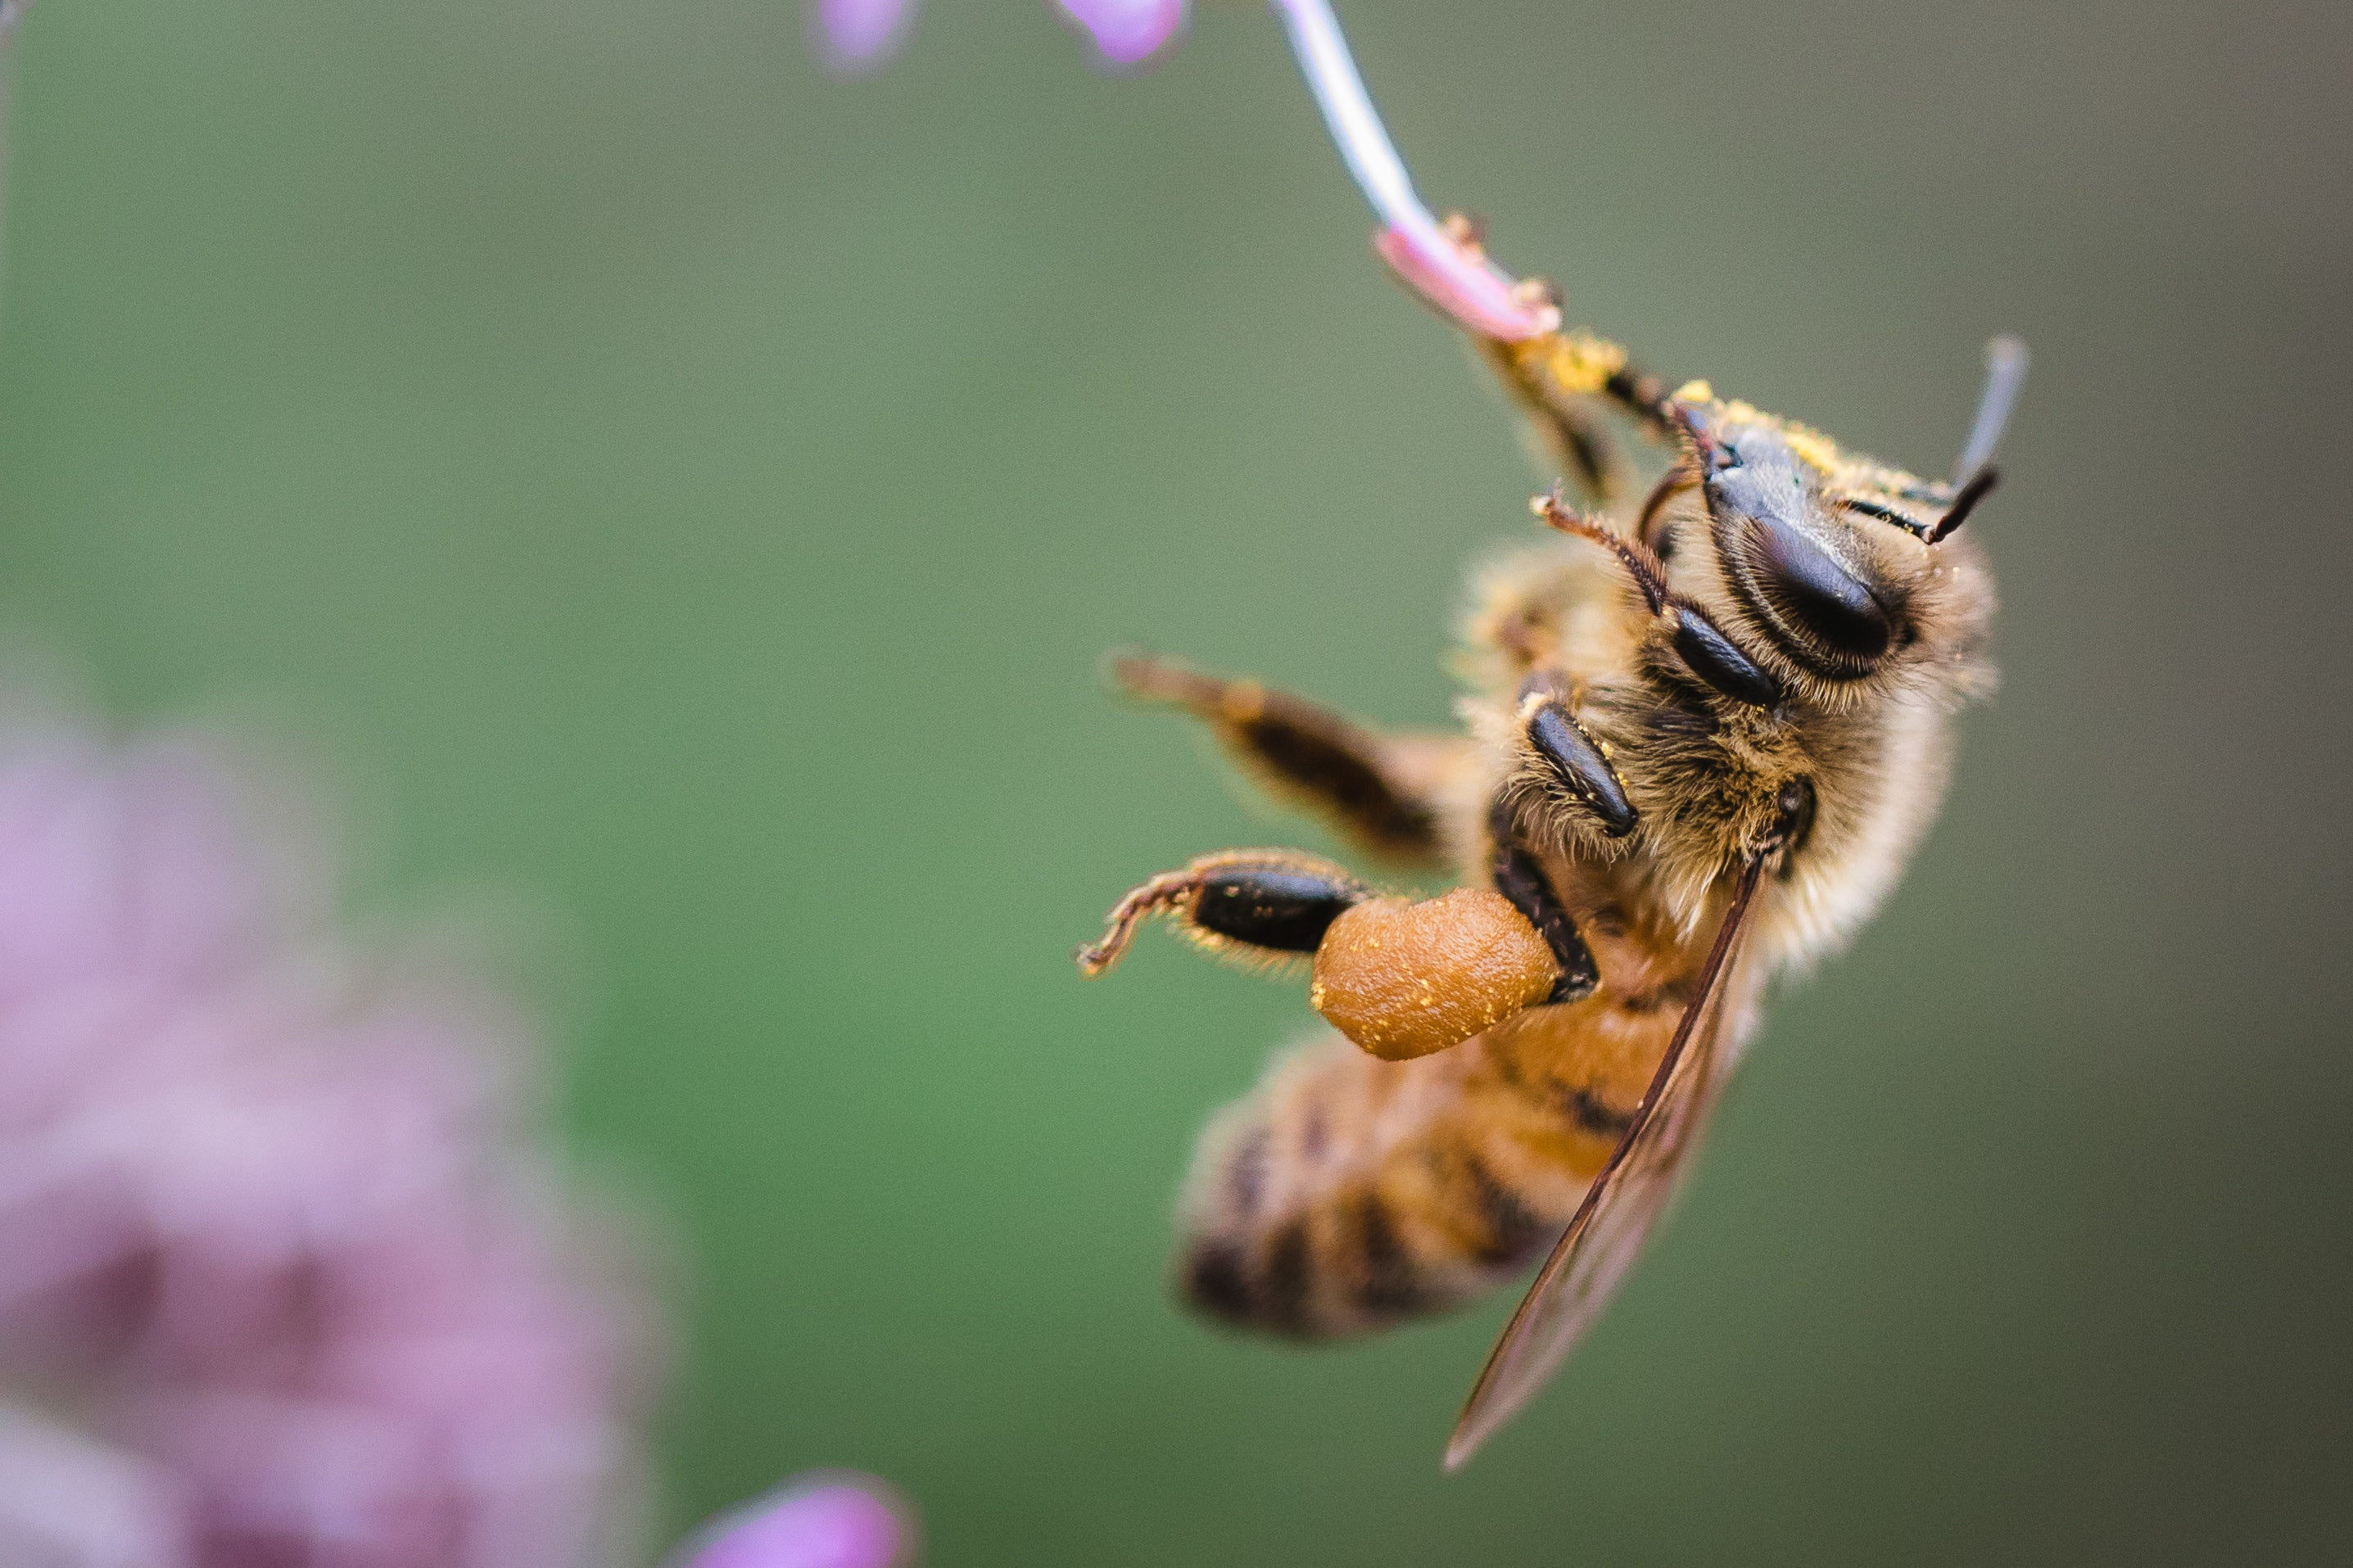 honeybee drinking from a flower bud on green background